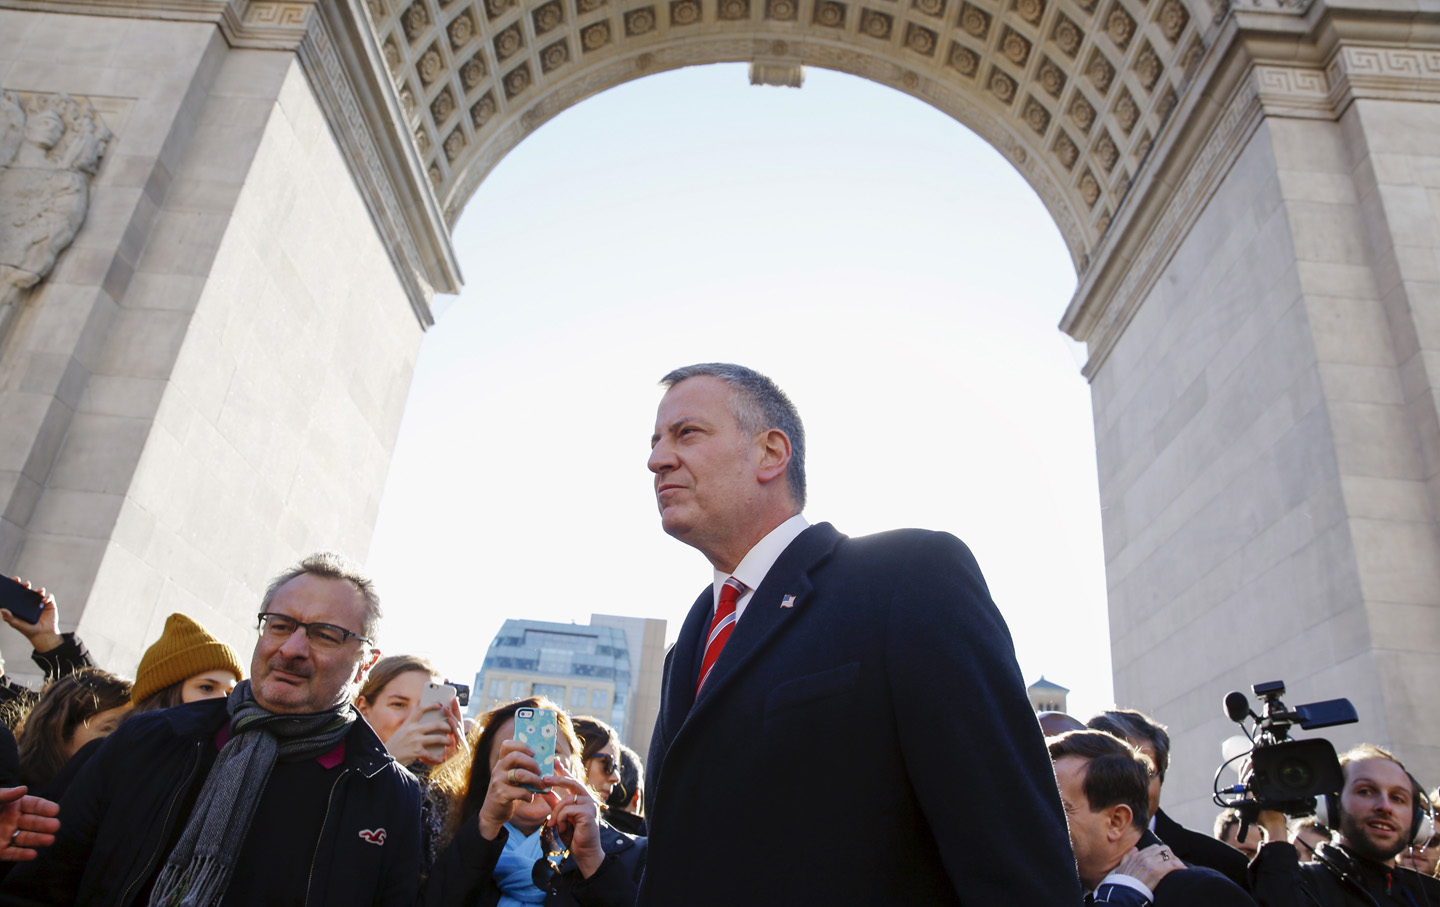 Blasio arrives to join a gathering in response to attacks in Paris, at Washington Square Park in the Manhattan borough of New York